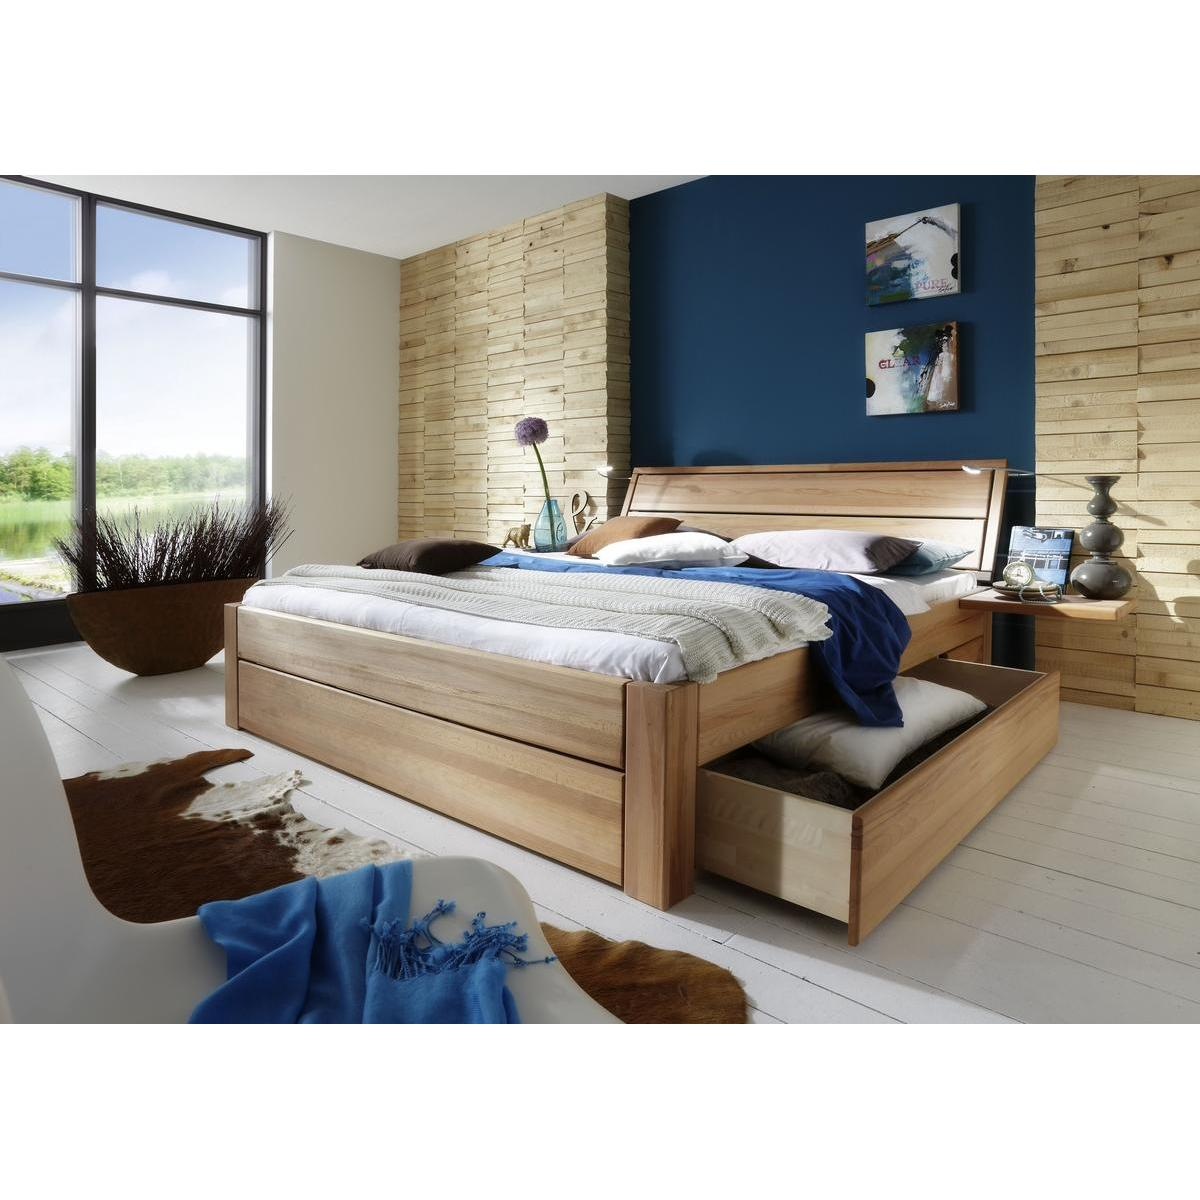 massivholz schubkastenbett 100x200 easy sleep kernbuche massiv ge lt 9410 93 52 87. Black Bedroom Furniture Sets. Home Design Ideas